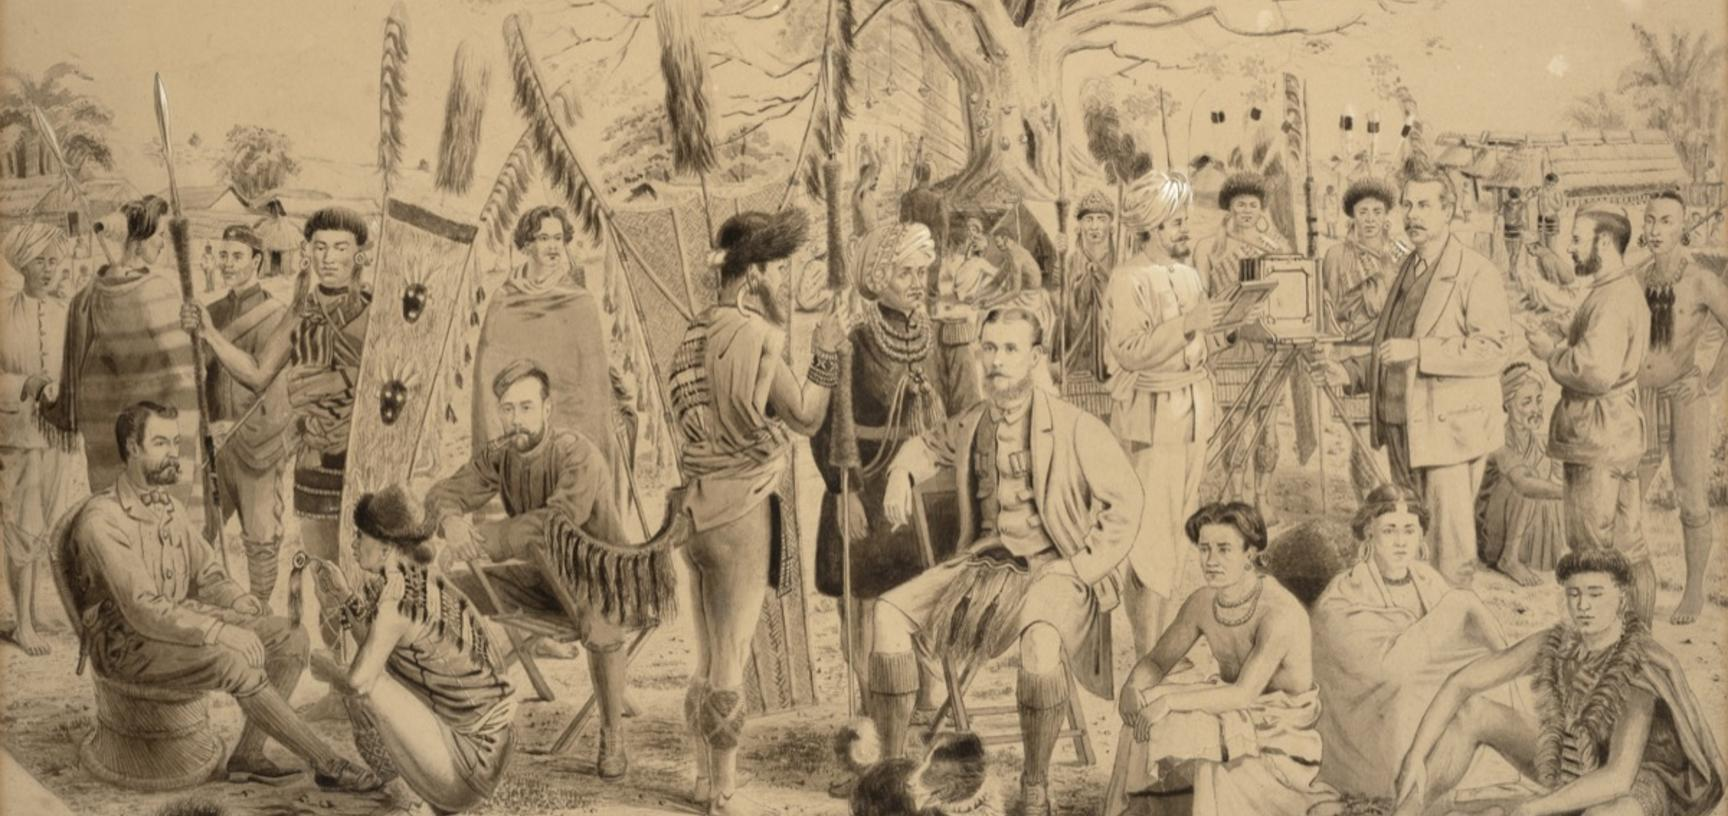 'Submission of Naga Chiefs' (handwritten caption or title). This original painting, from which various copies derive, shows at its centre Captain John Butler, the British administrator in charge of the Naga Hills District, while also portrayed (standing b